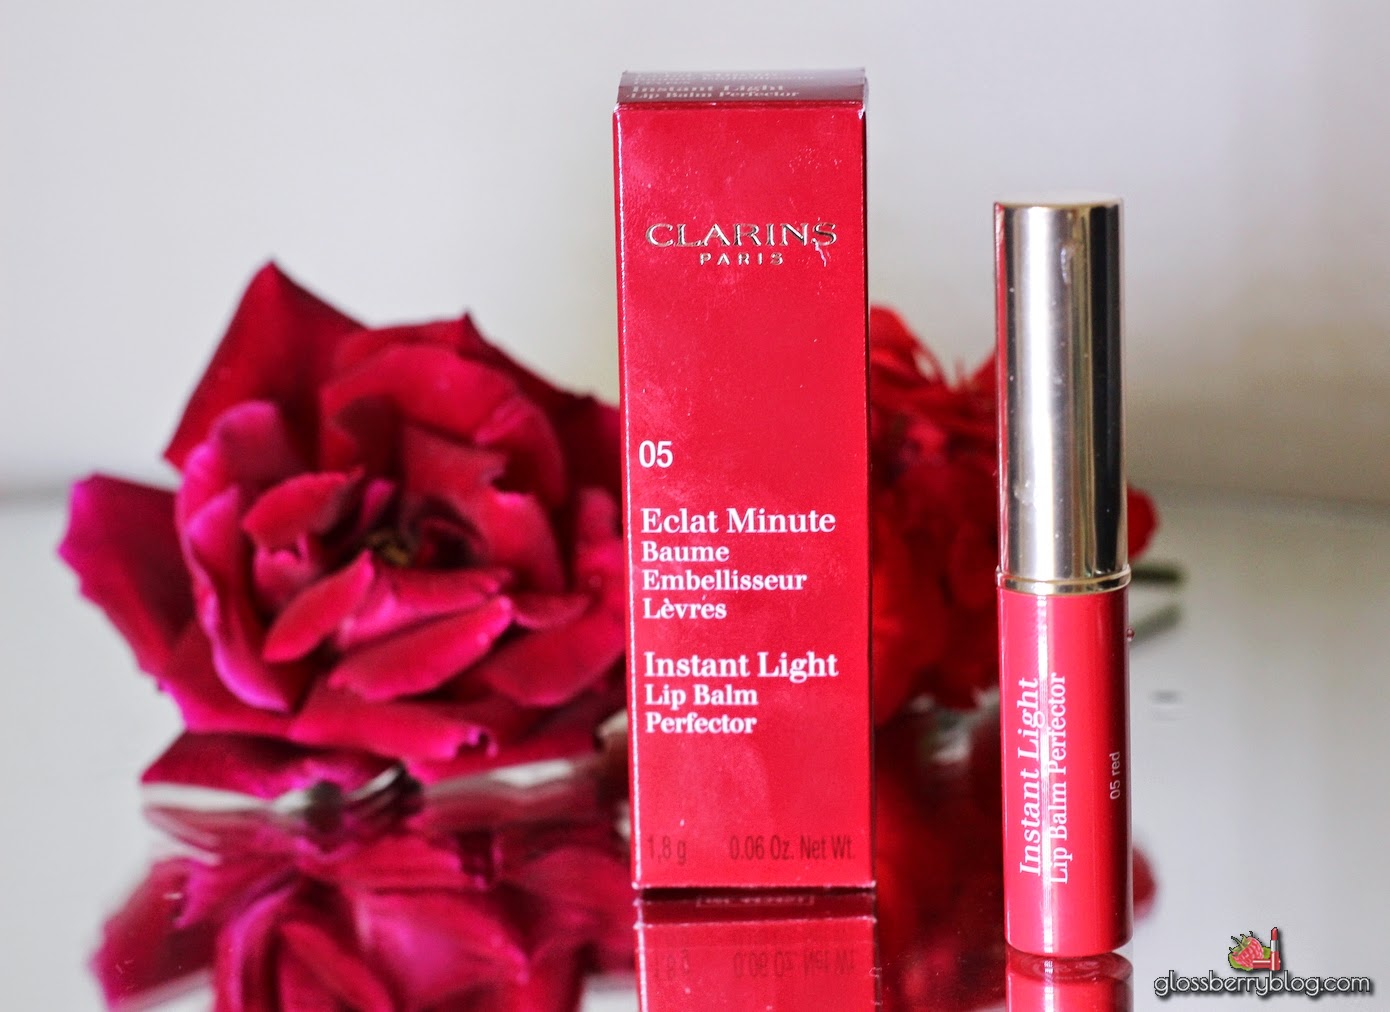 Clarins Instant Light Natural Lip Balm Perfector 05